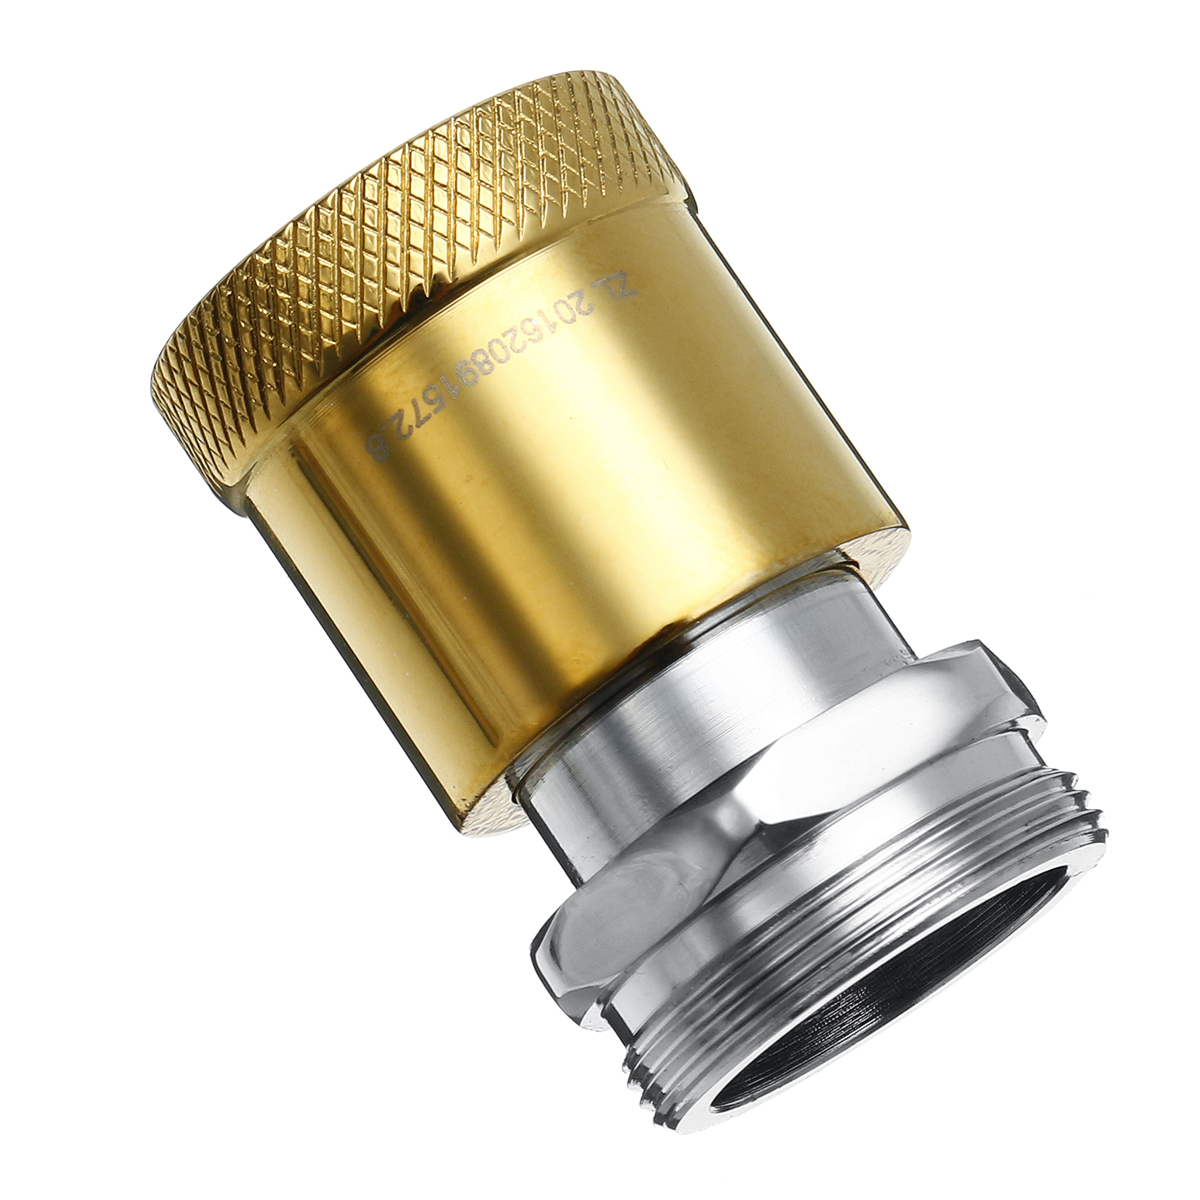 2 Funtion Water Saving Aerator Connector Diffuser Filter Aerator Faucet Nozzle Filter